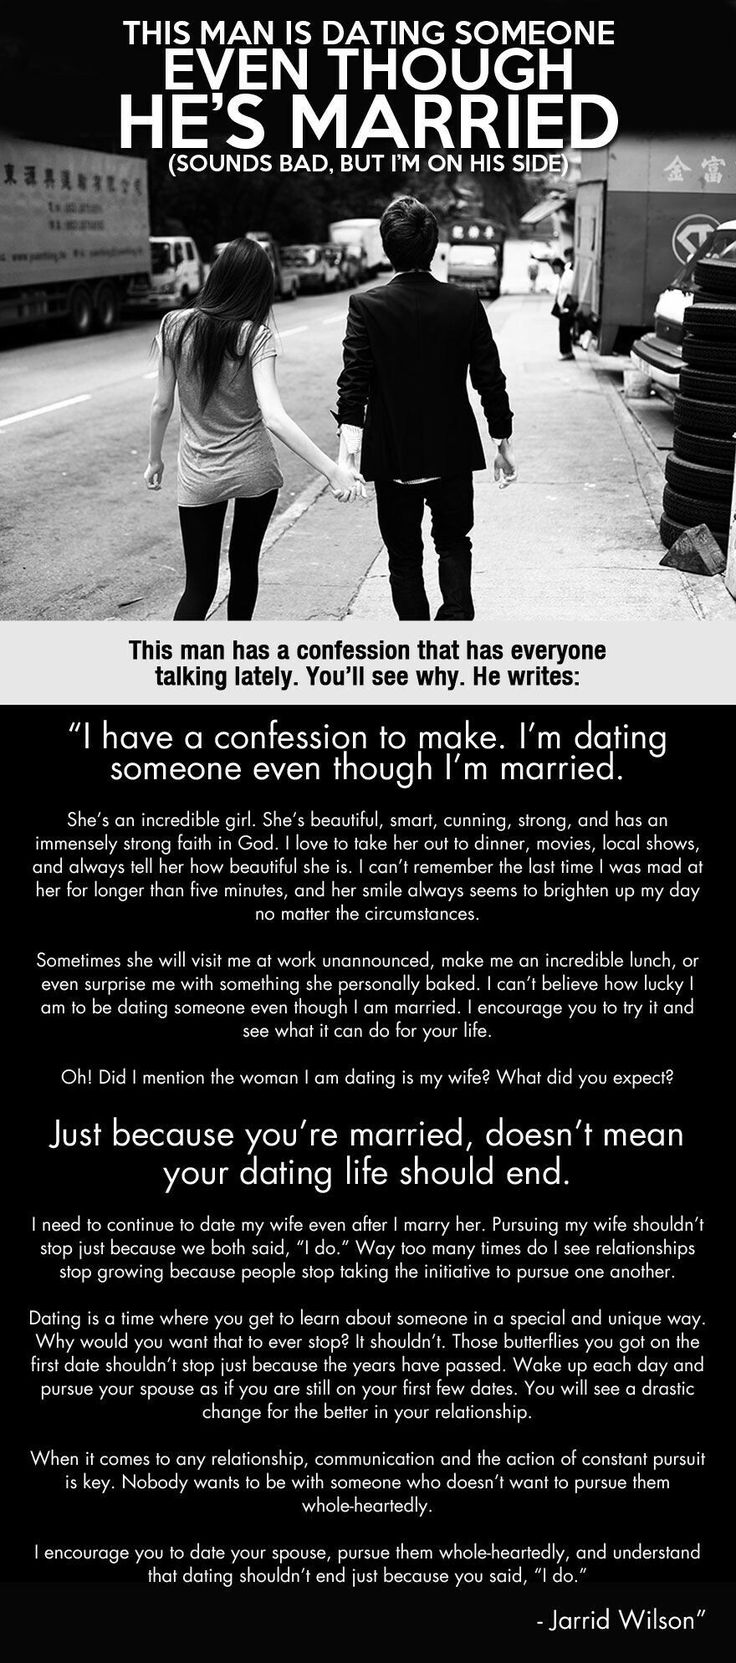 I m dating someone even though I m married…Man this is going so viral